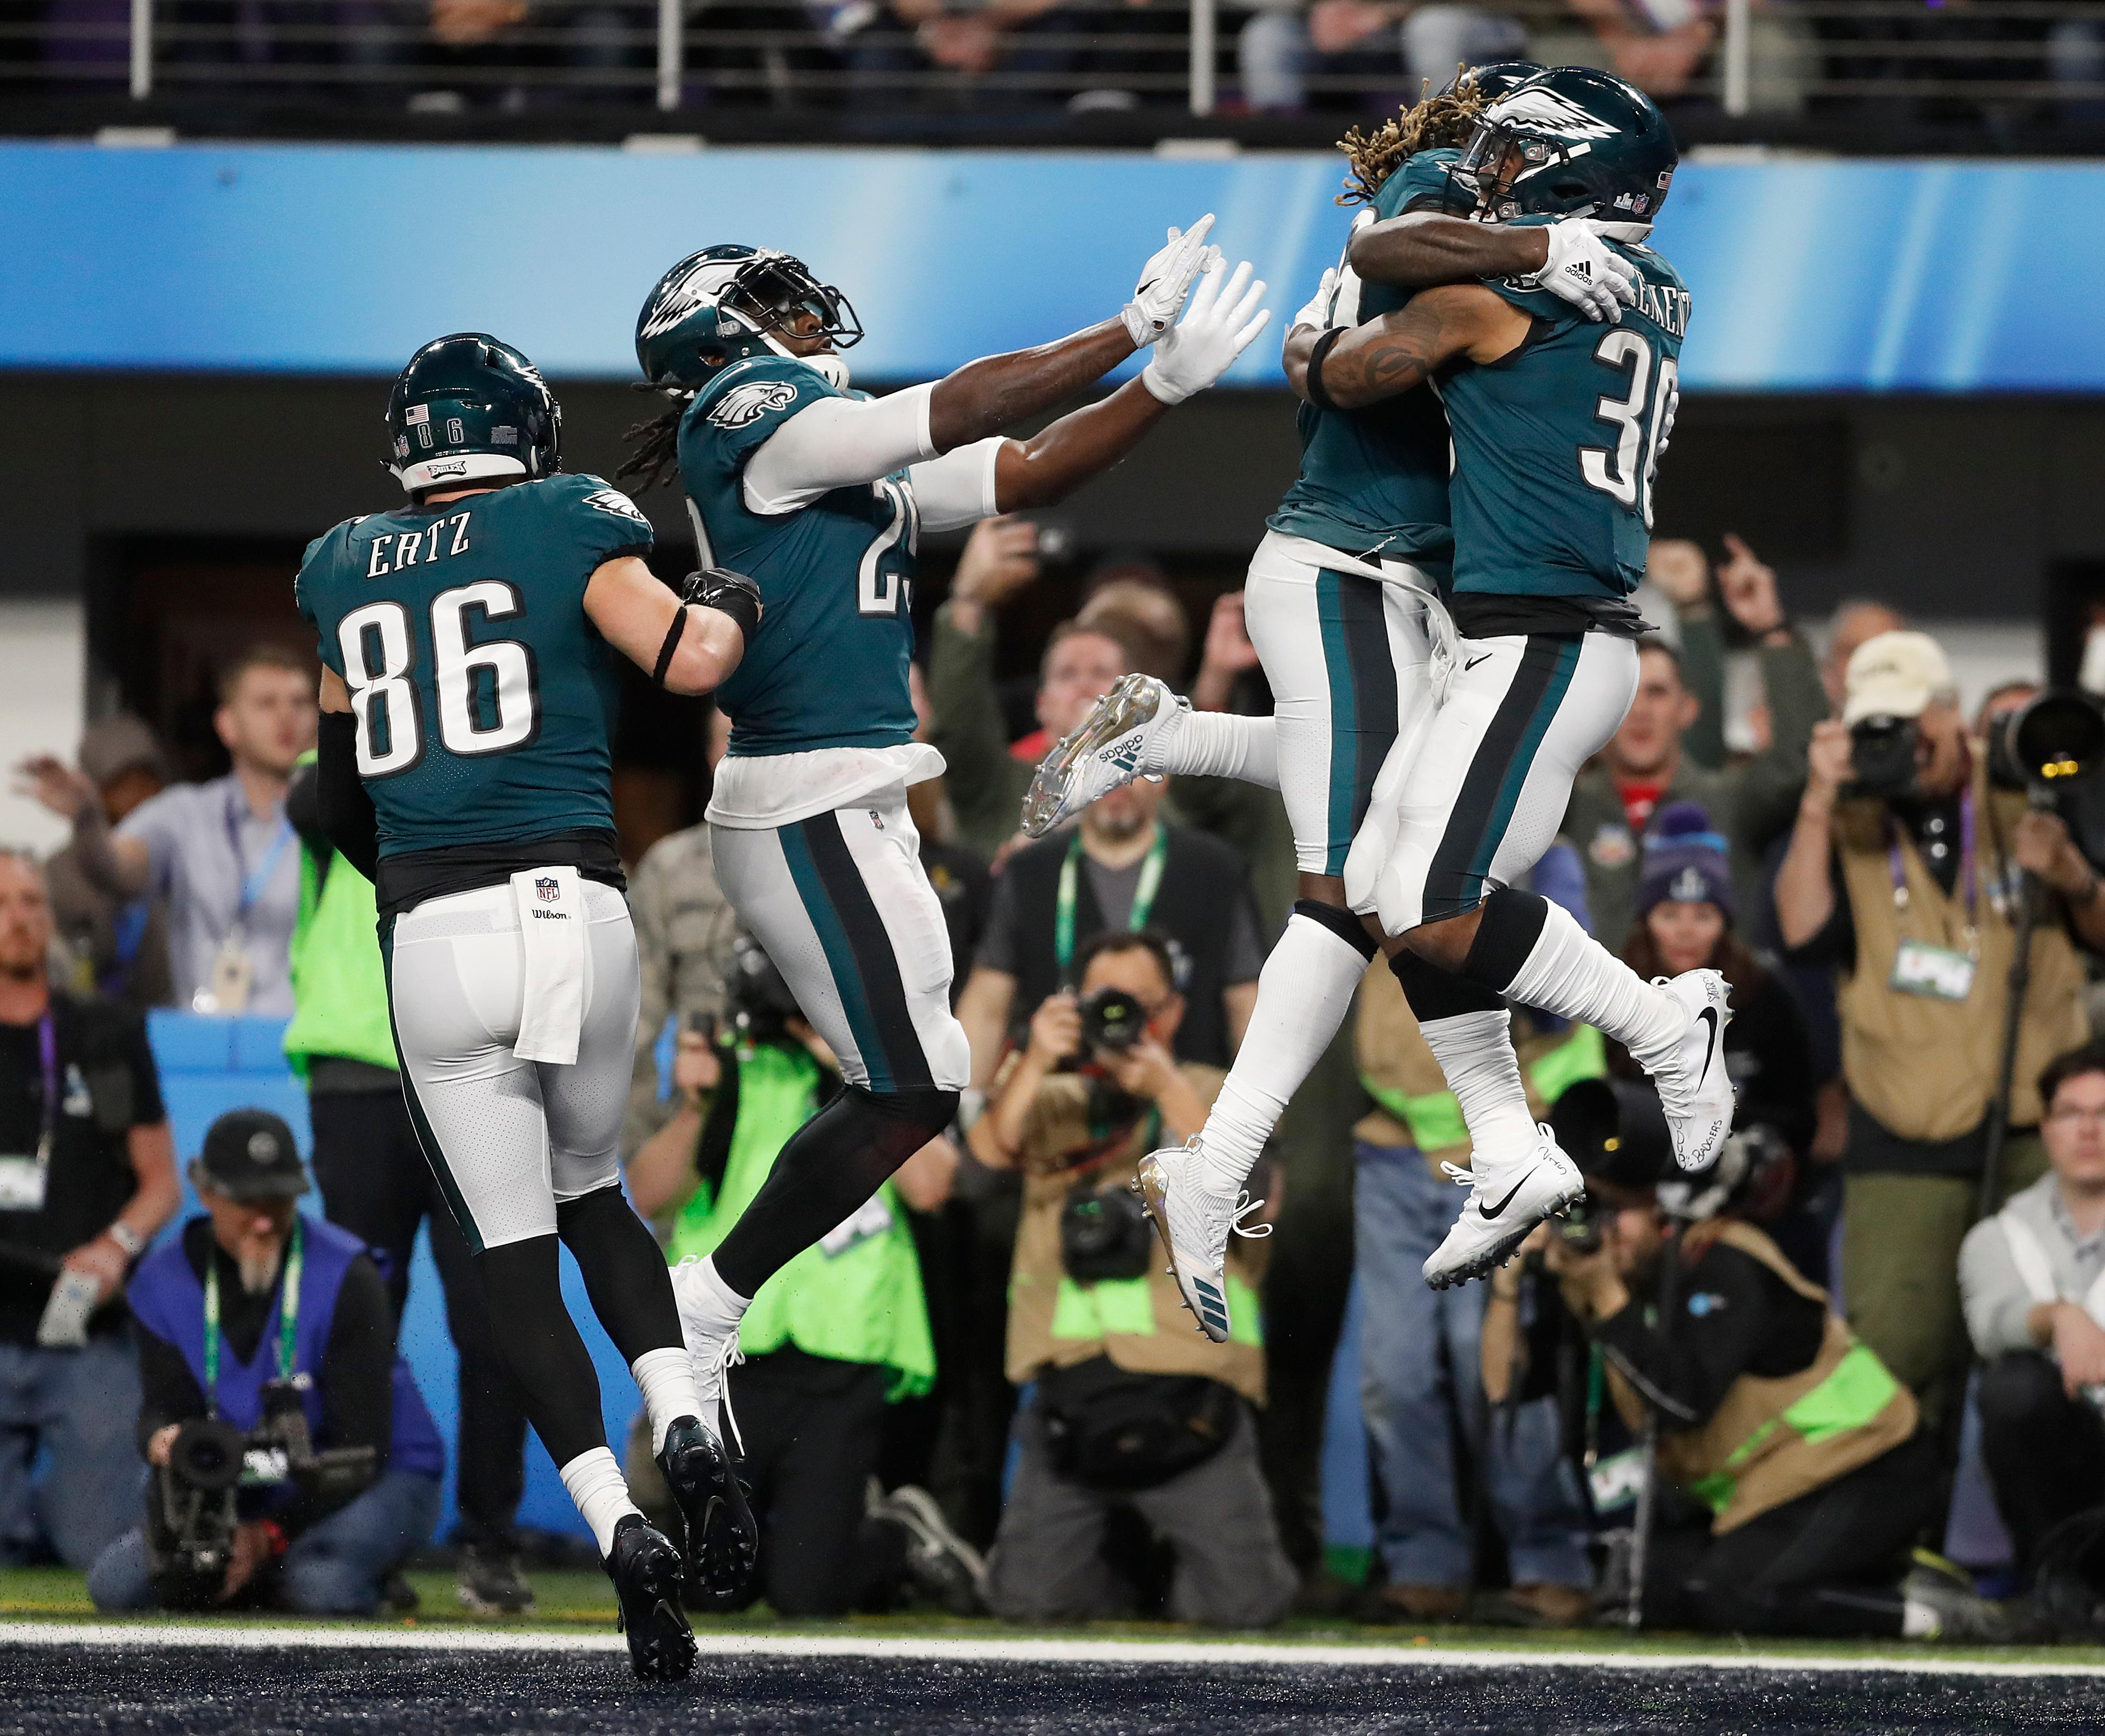 Philadelphia Eagles' Corey Clement, right, celebrates his touchdown catch during the second half of the NFL Super Bowl 52 football game against the New England Patriots Sunday, Feb. 4, 2018, in Minneapolis. (AP Photo/Jeff Roberson)